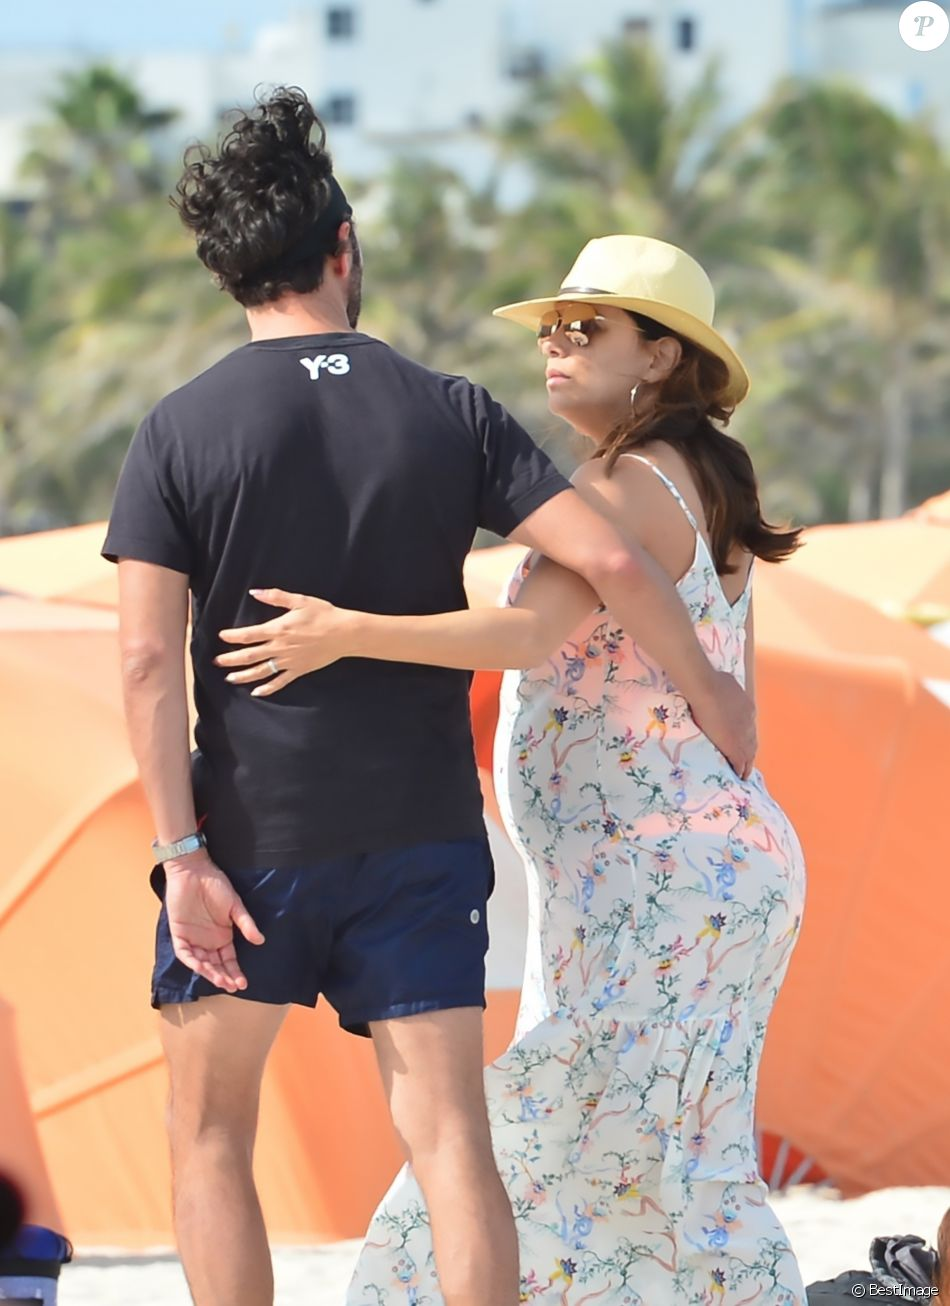 exclusif eva longoria tr s enceinte se balade avec son mari jos baston sur une plage miami. Black Bedroom Furniture Sets. Home Design Ideas